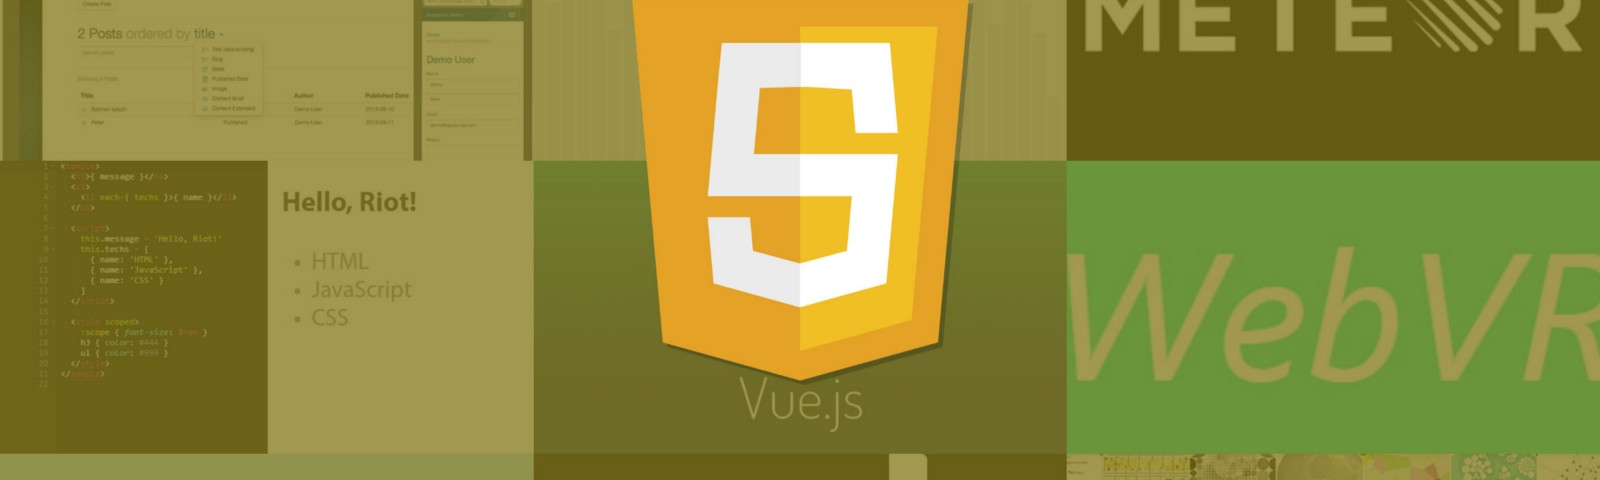 12 Javascript Libraries To Watch In 2017 Webdesigner Depot